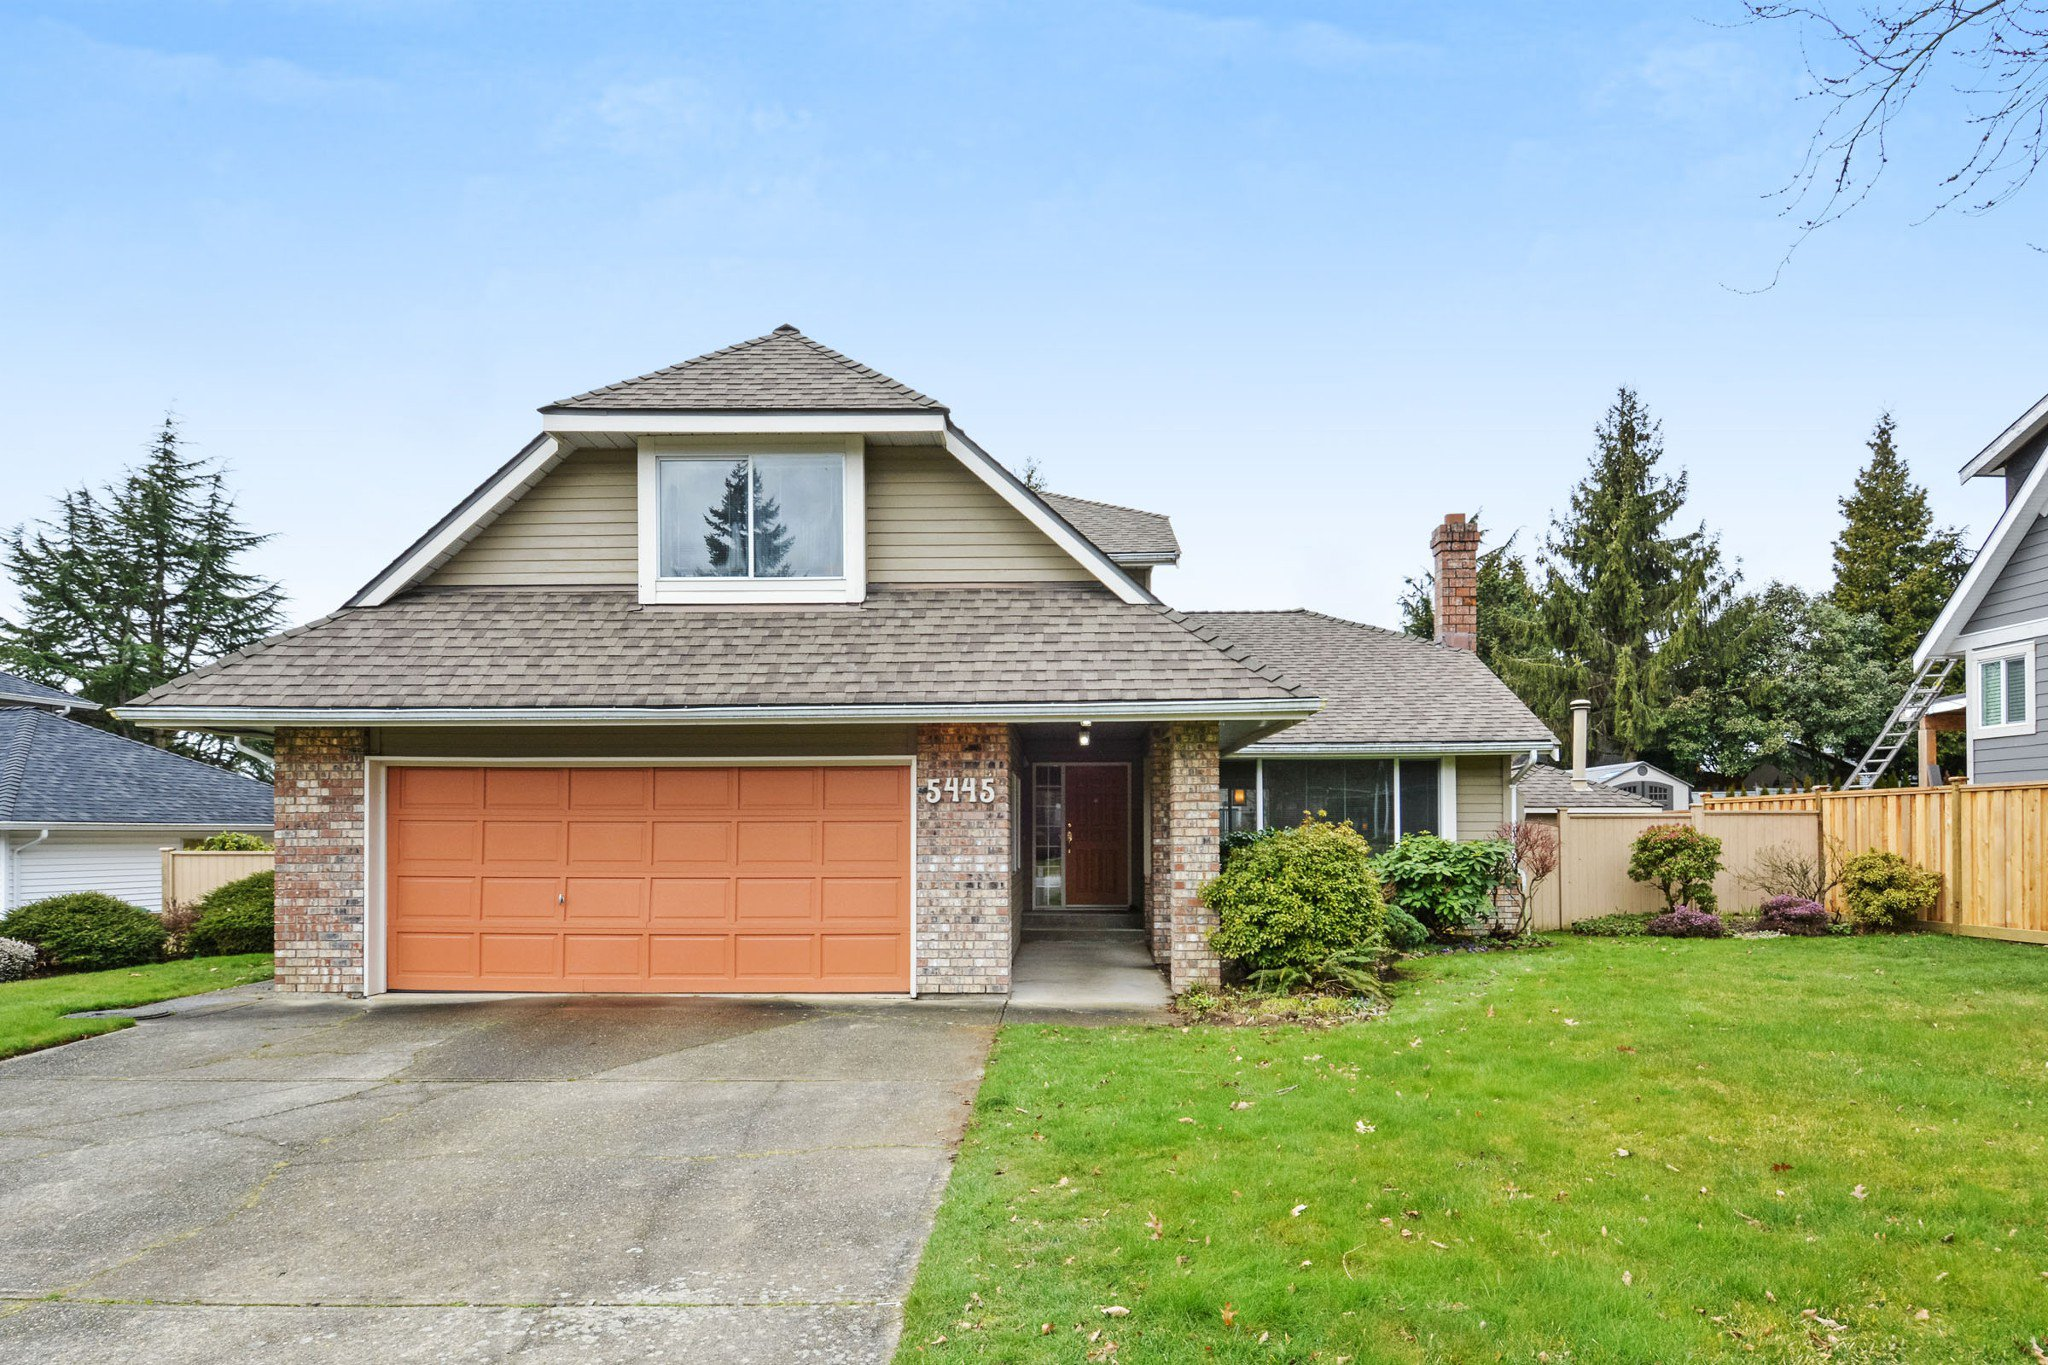 "Main Photo: 5445 185 Street in Surrey: Cloverdale BC House for sale in ""HUNTER PARK"" (Cloverdale)  : MLS®# R2243893"